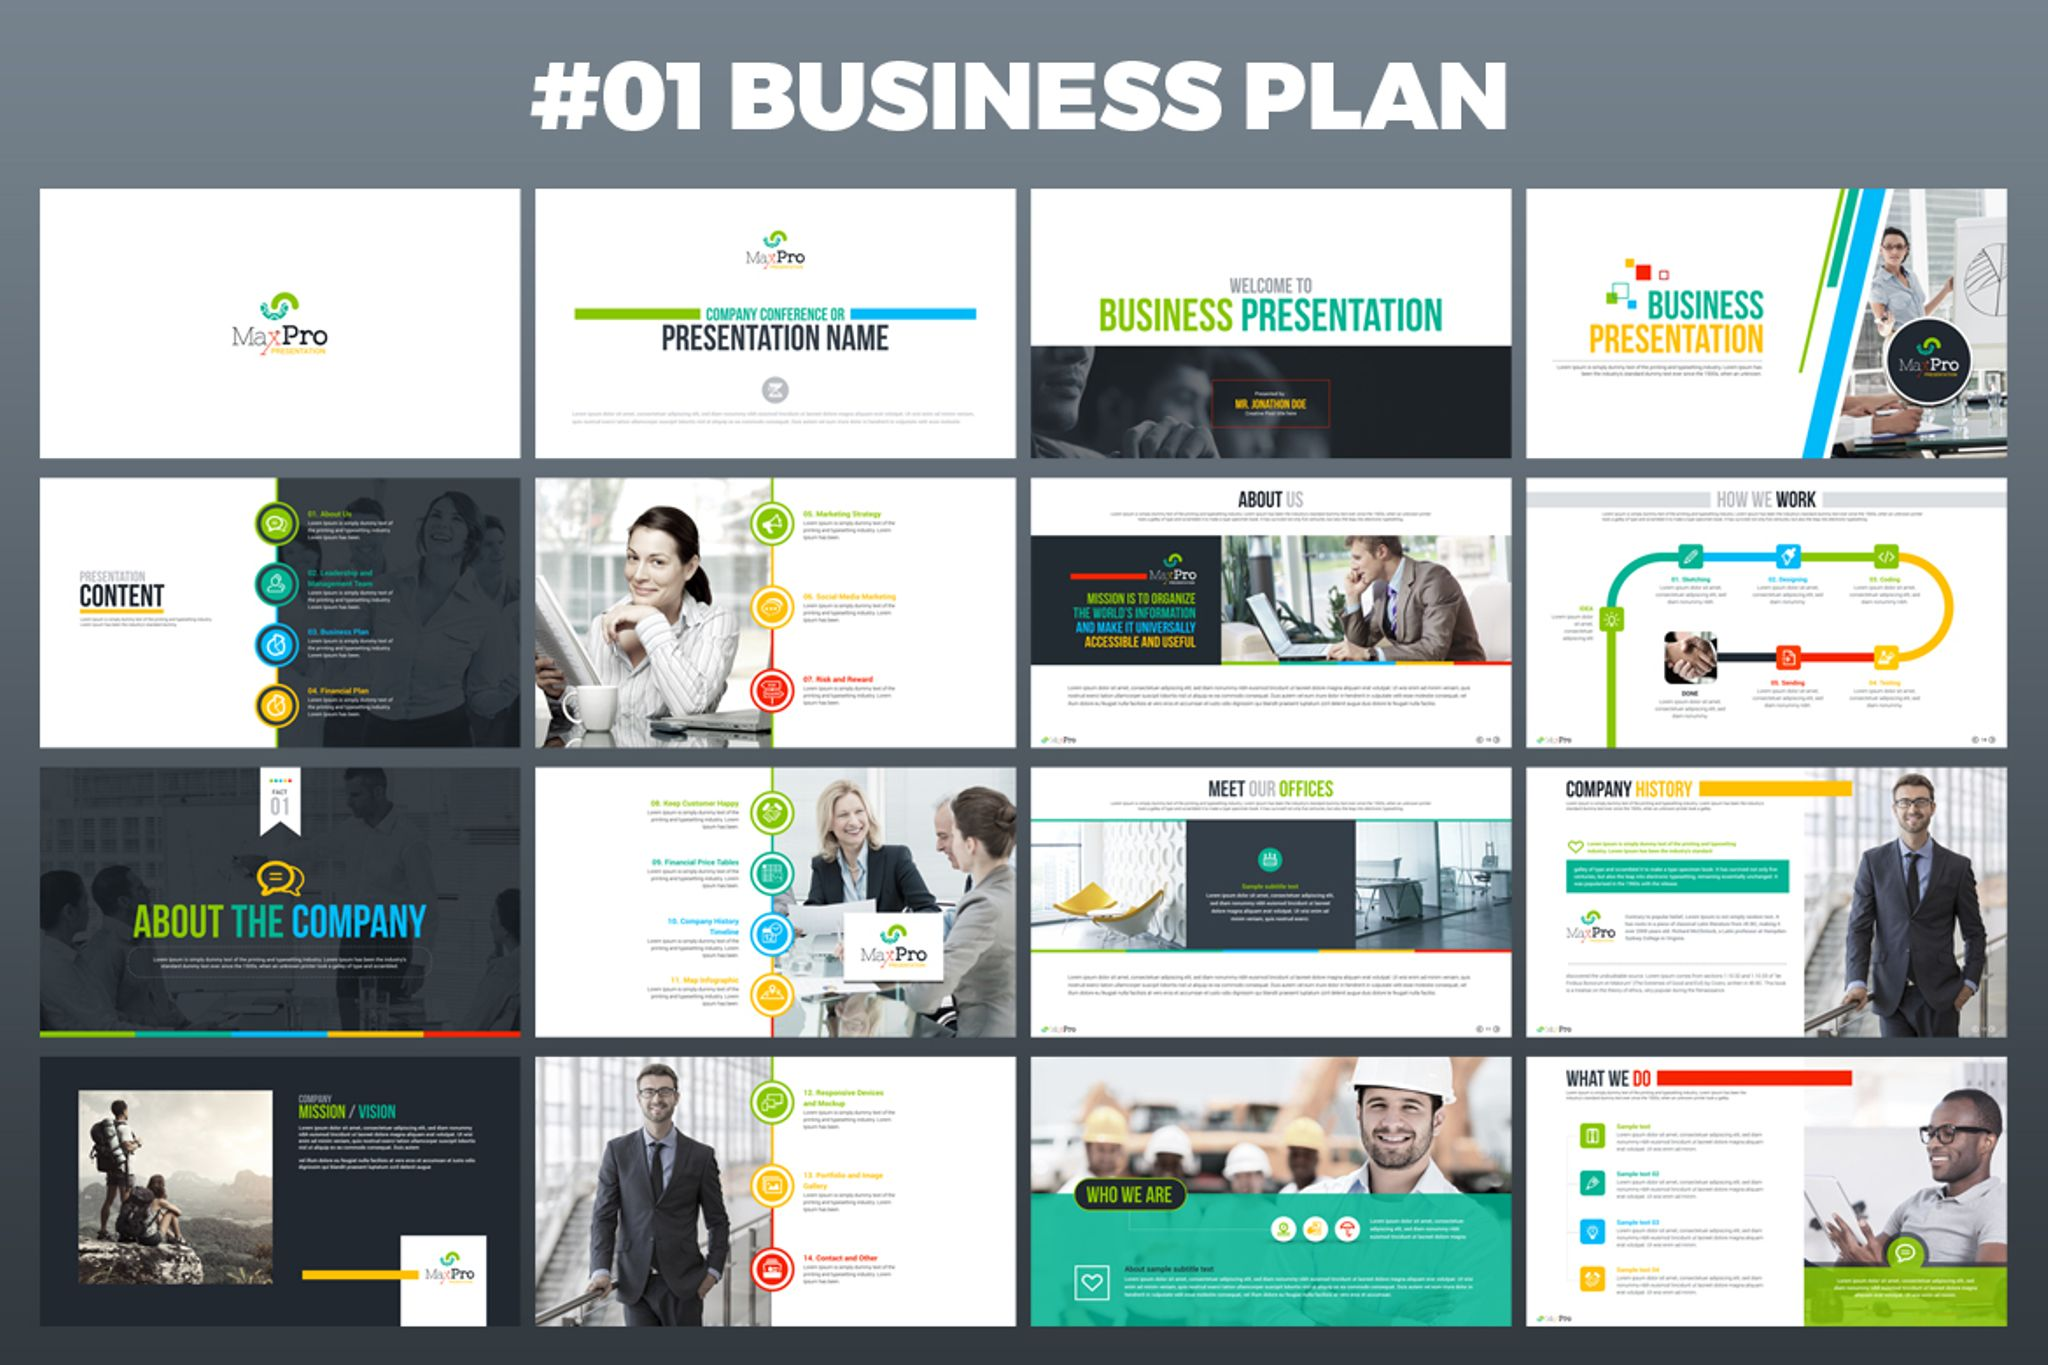 Maxpro business plan powerpoint template 66751 maxpro business plan powerpoint template big screenshot friedricerecipe Image collections